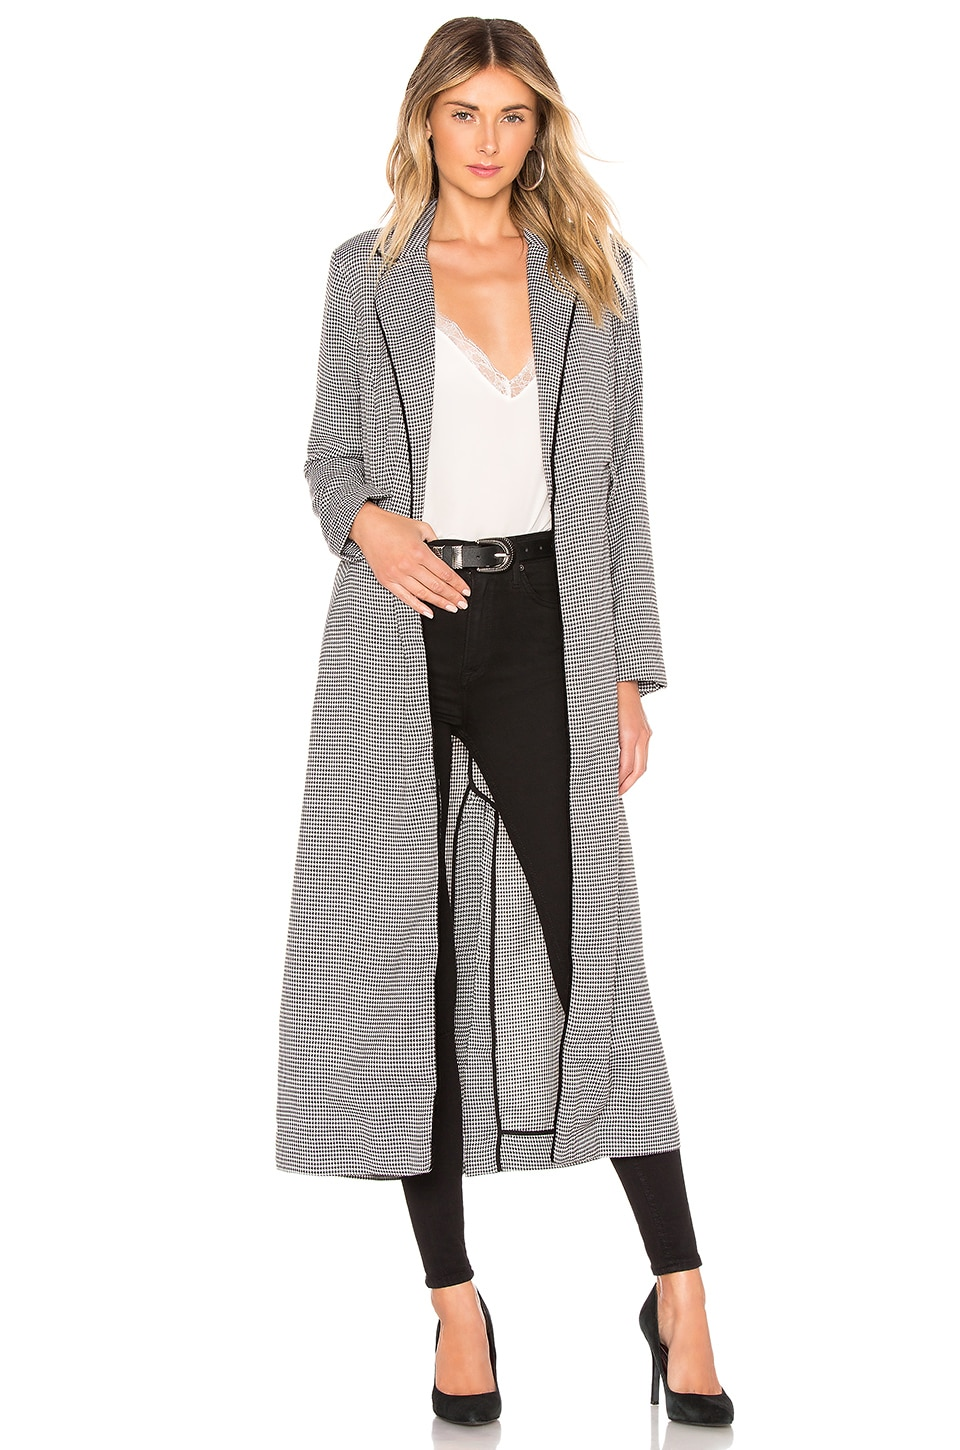 L'Academie The Tess Trench Coat in Black Houndstooth